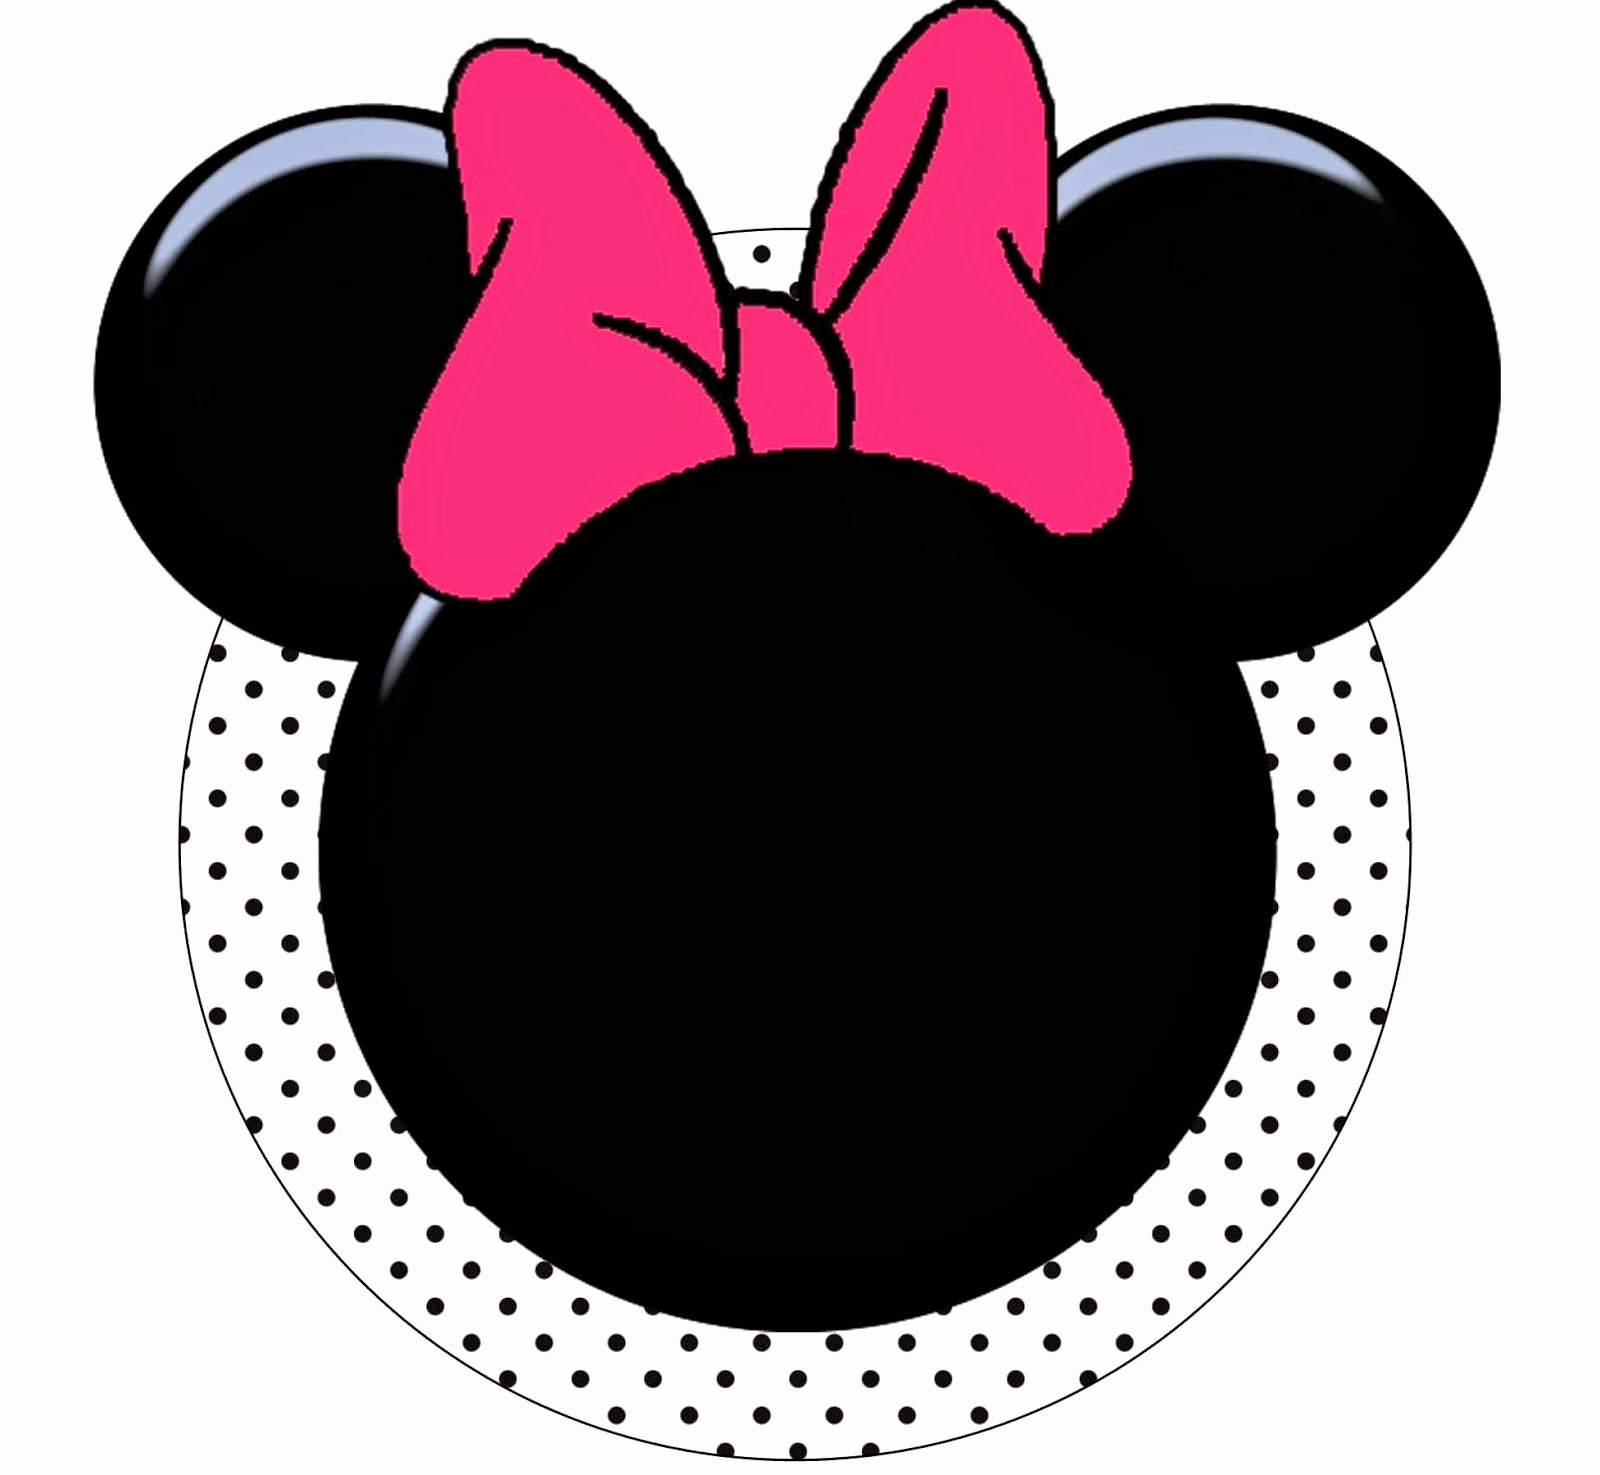 Minnie Mouse Ears Printable Best Of Minnie Mouse Ears and Bow Template Free